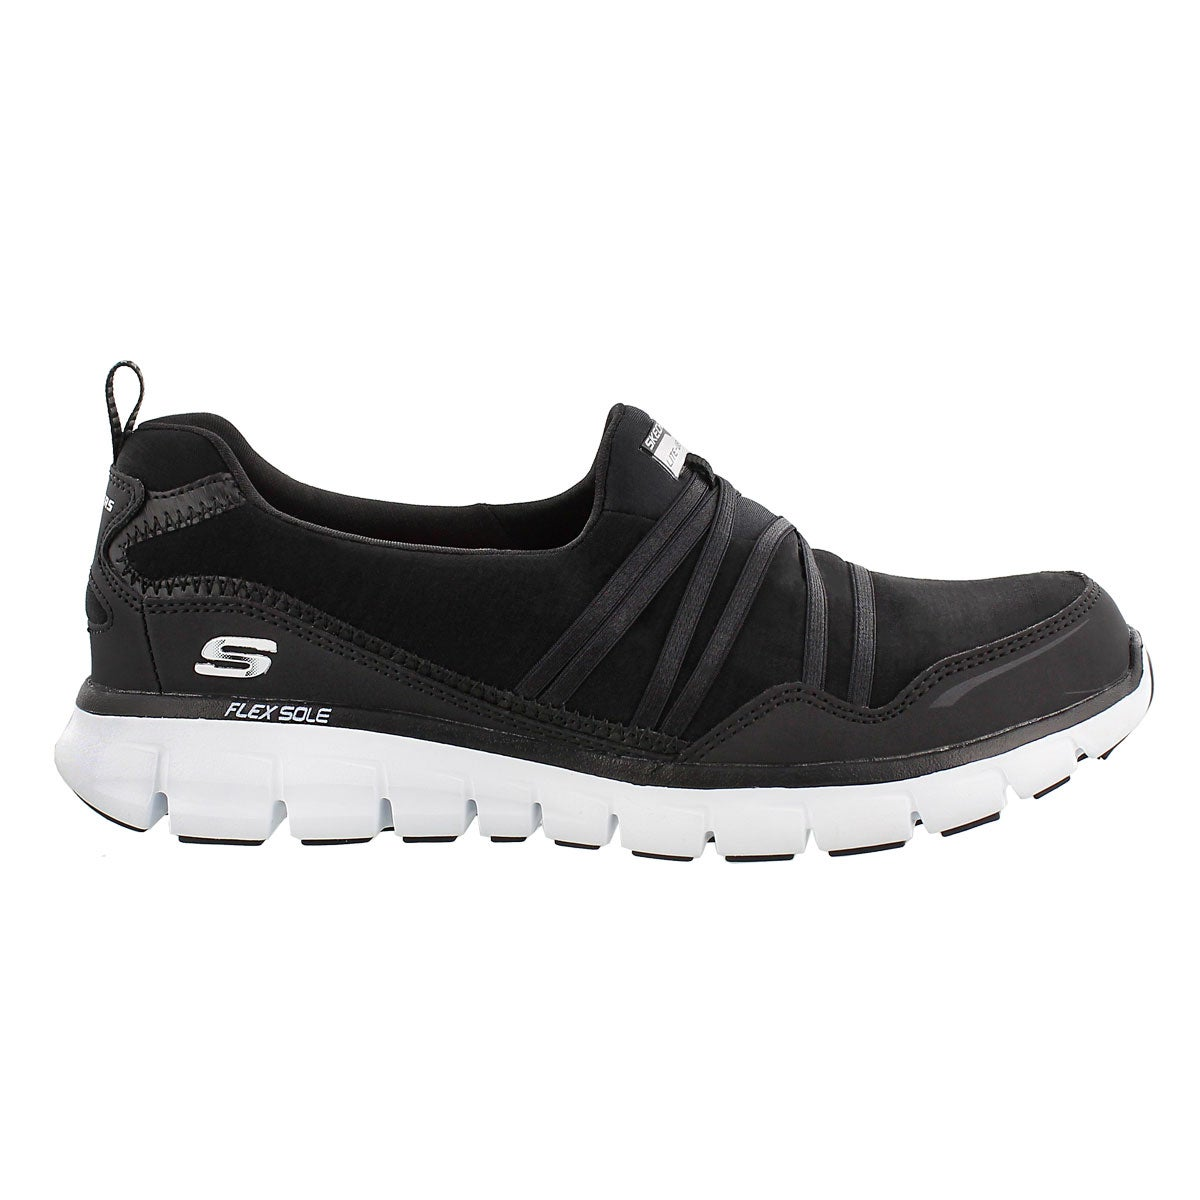 Lds Scene Stealer blk bungee slipon